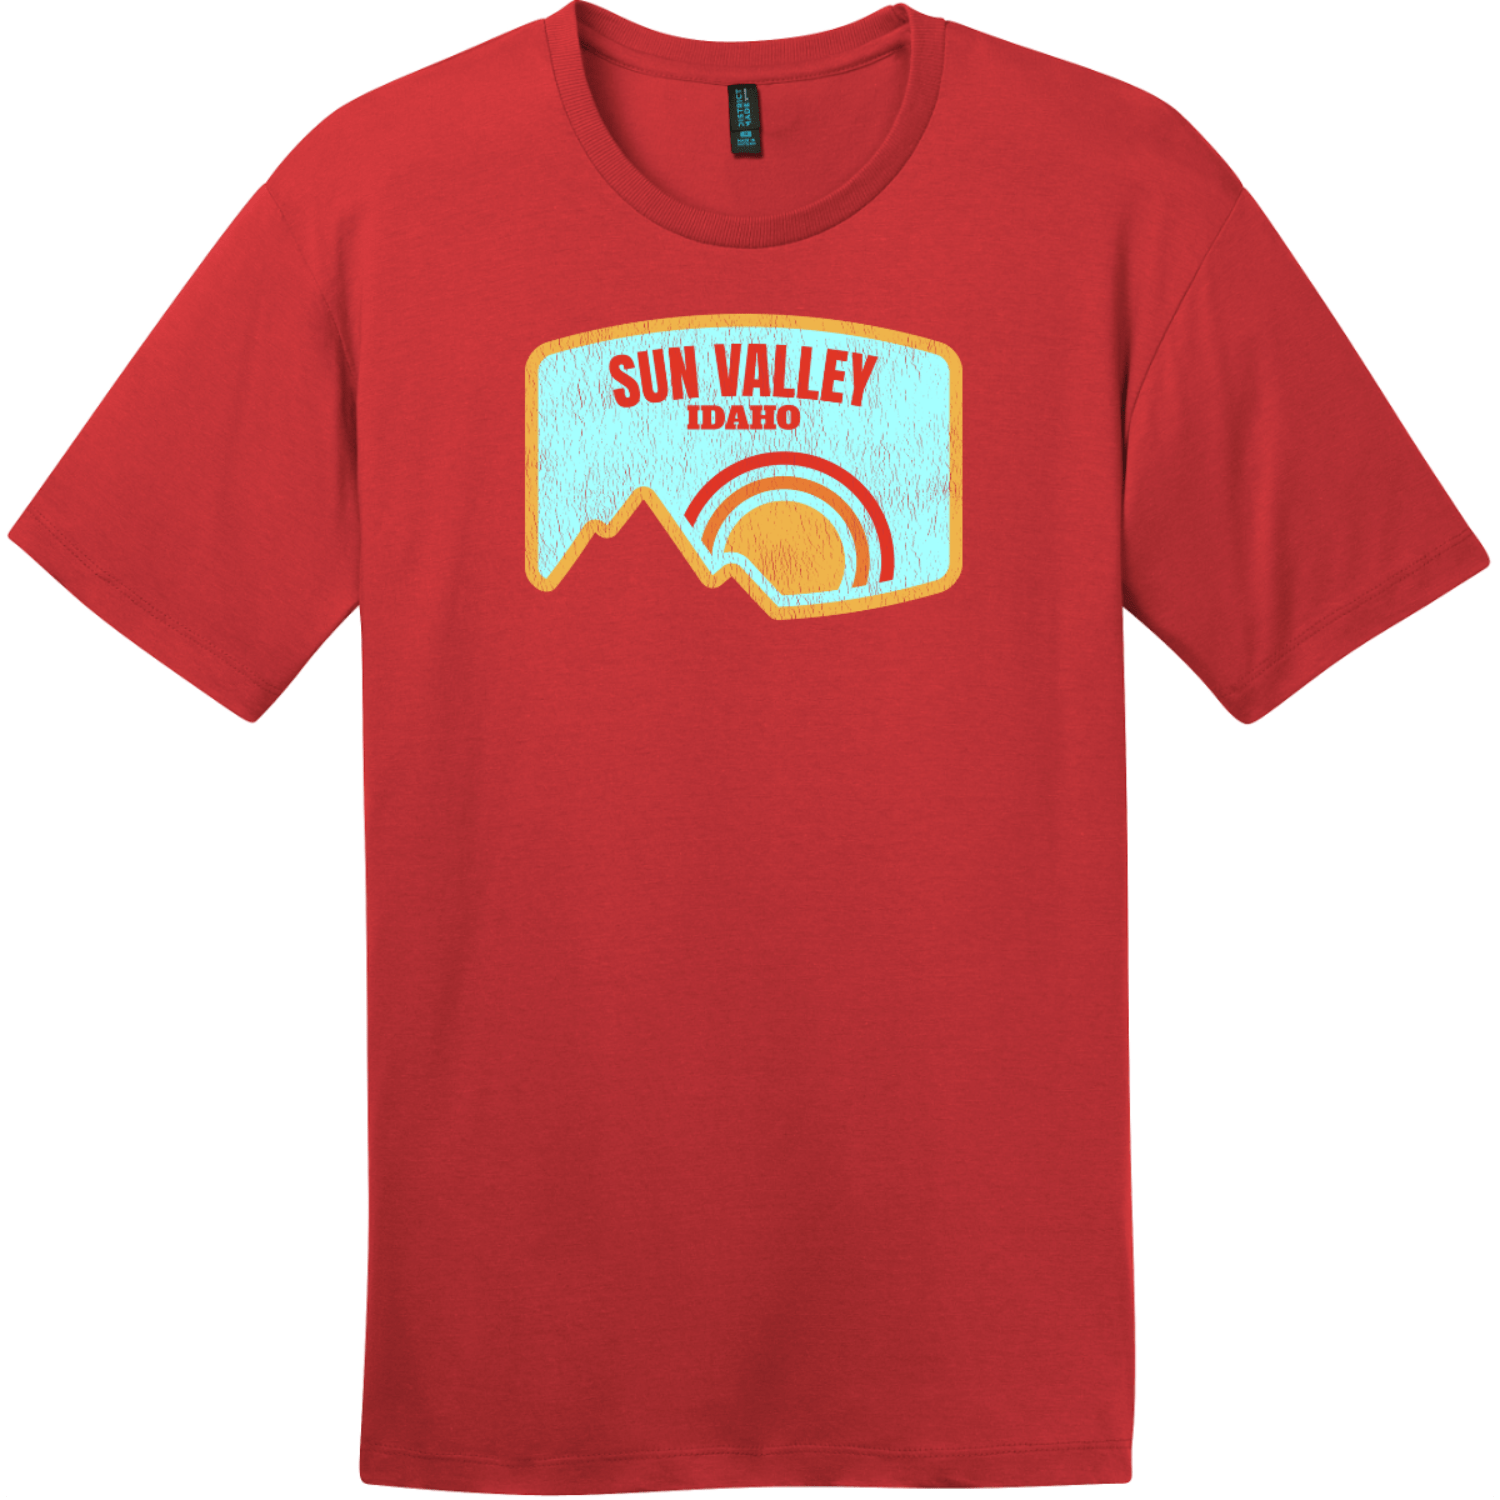 Sun Valley Idaho Mountain Vintage T-Shirt Classic Red District Perfect Weight Tee DT104